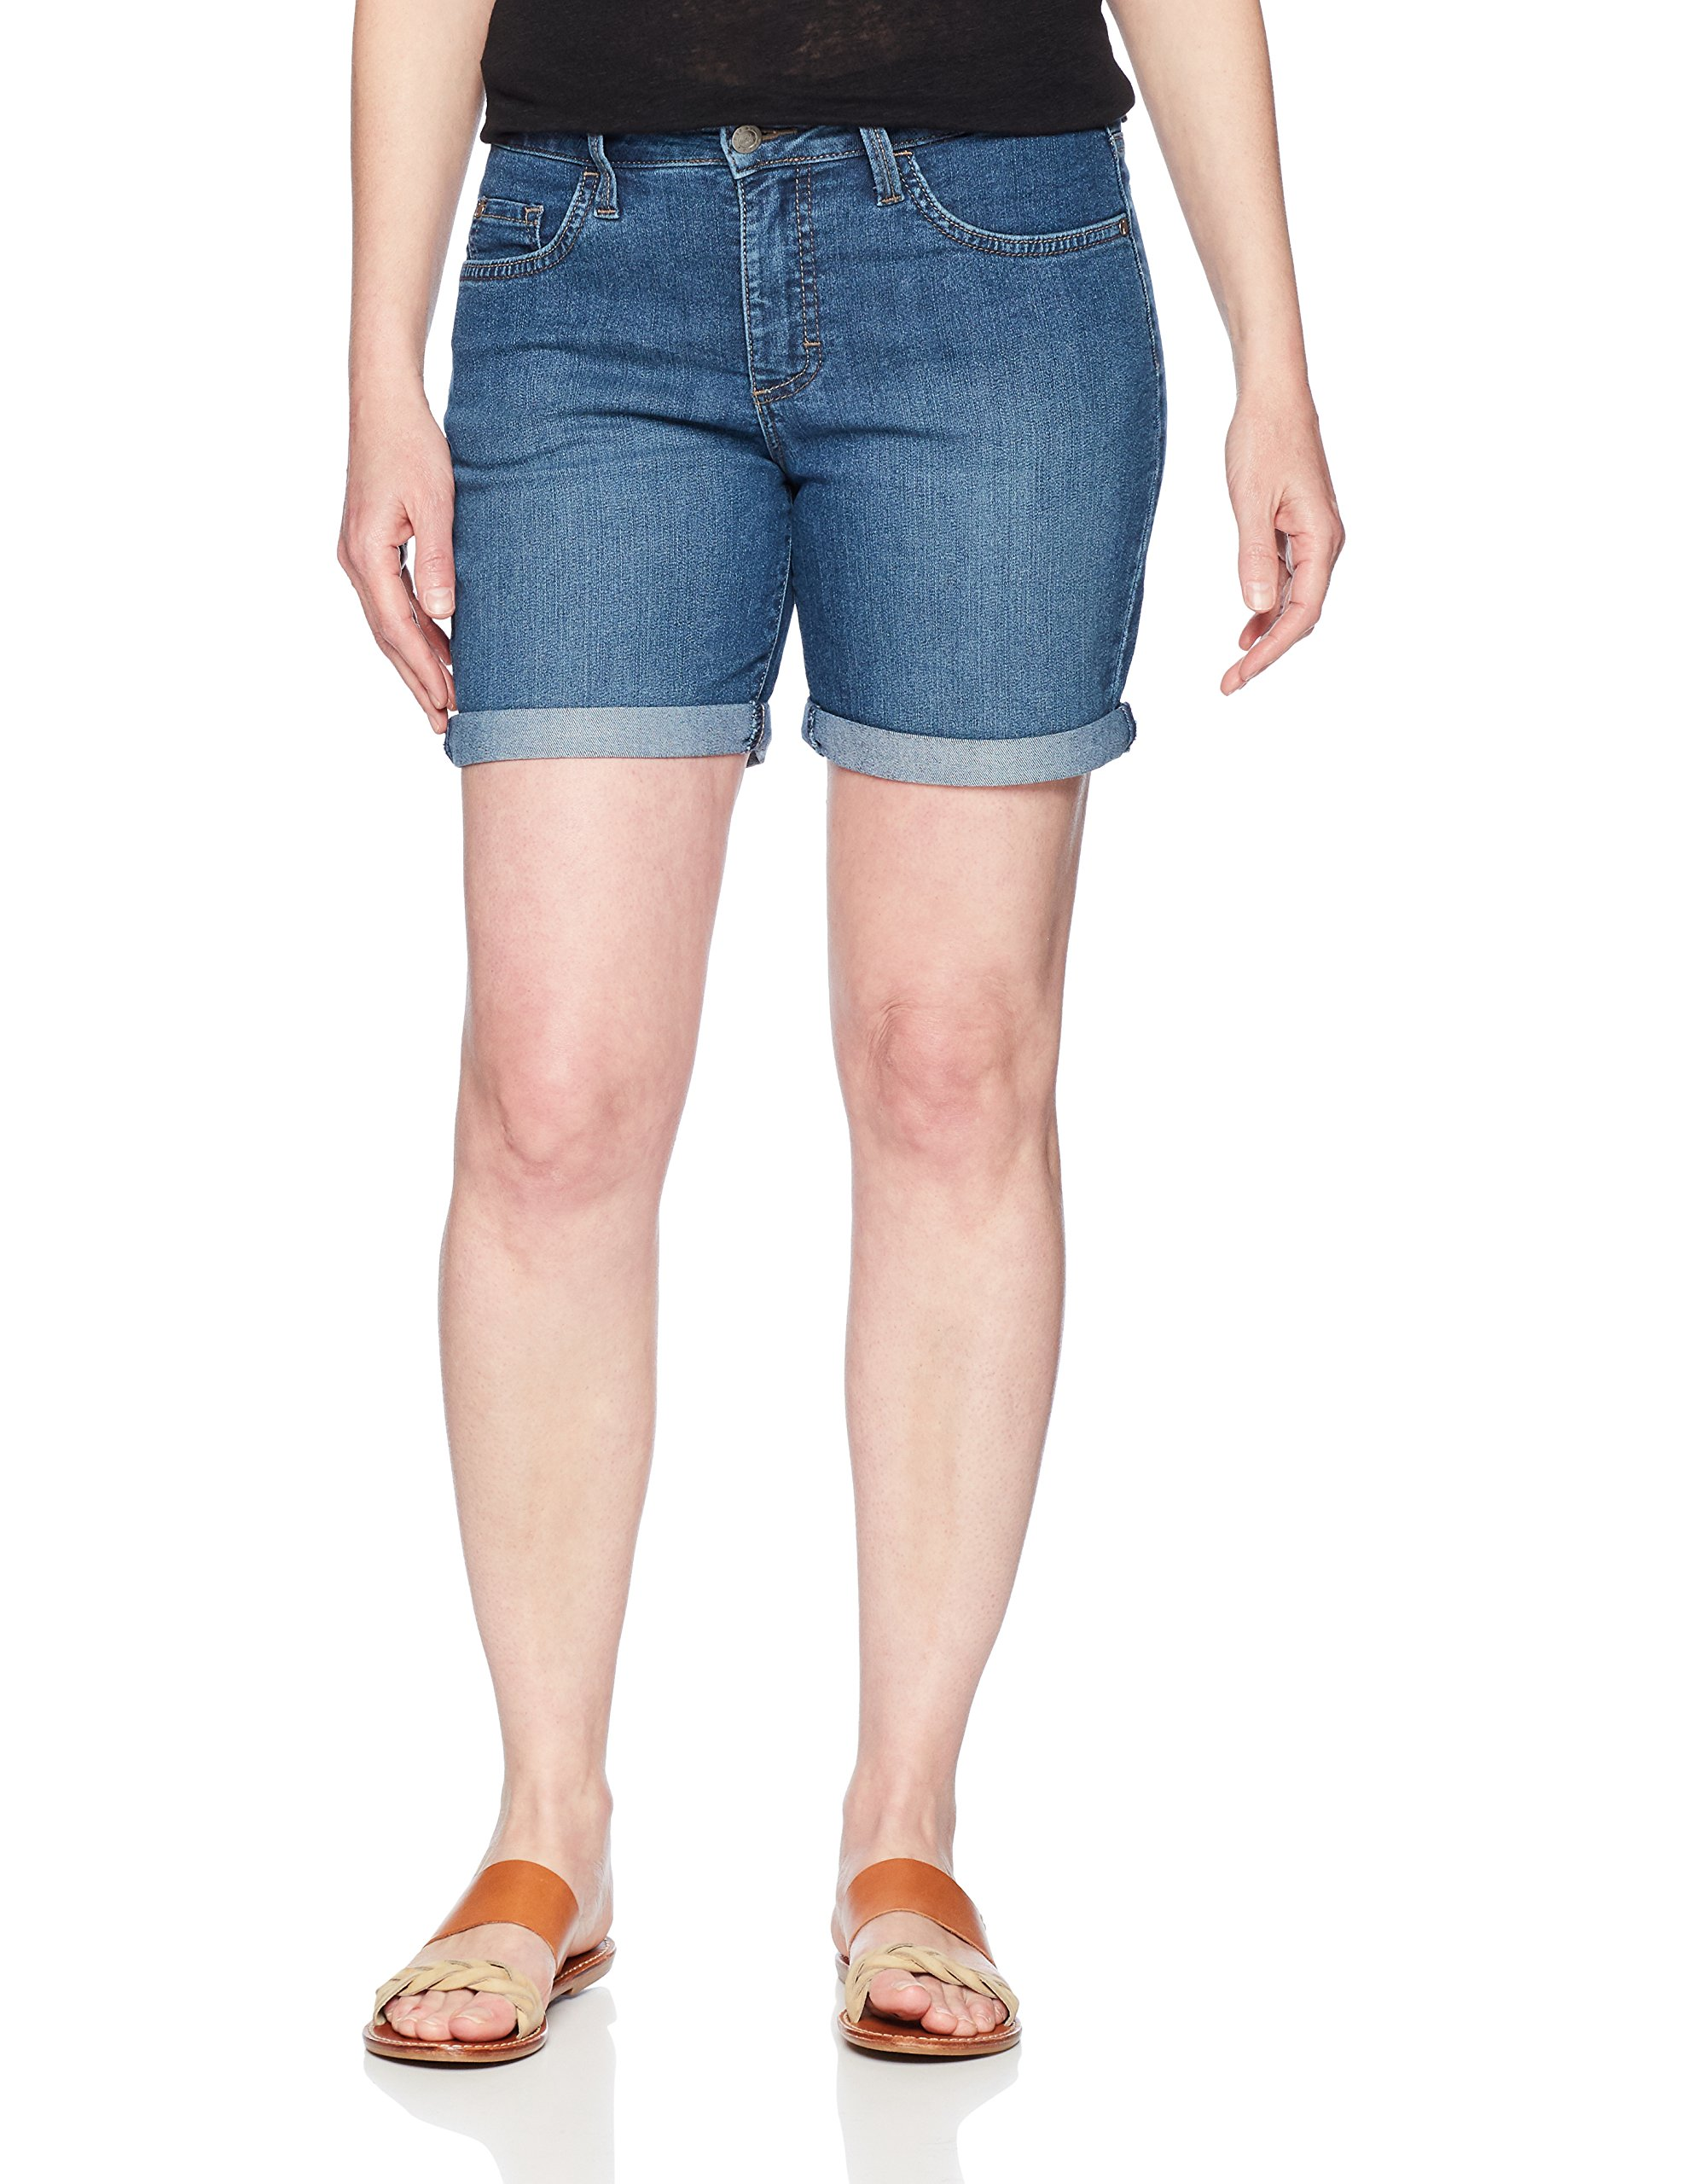 Riders by Lee Indigo Women's Rolled Cuff Midrise Denim Short with 6'' Inseam, Mid Wash, 12 AVG